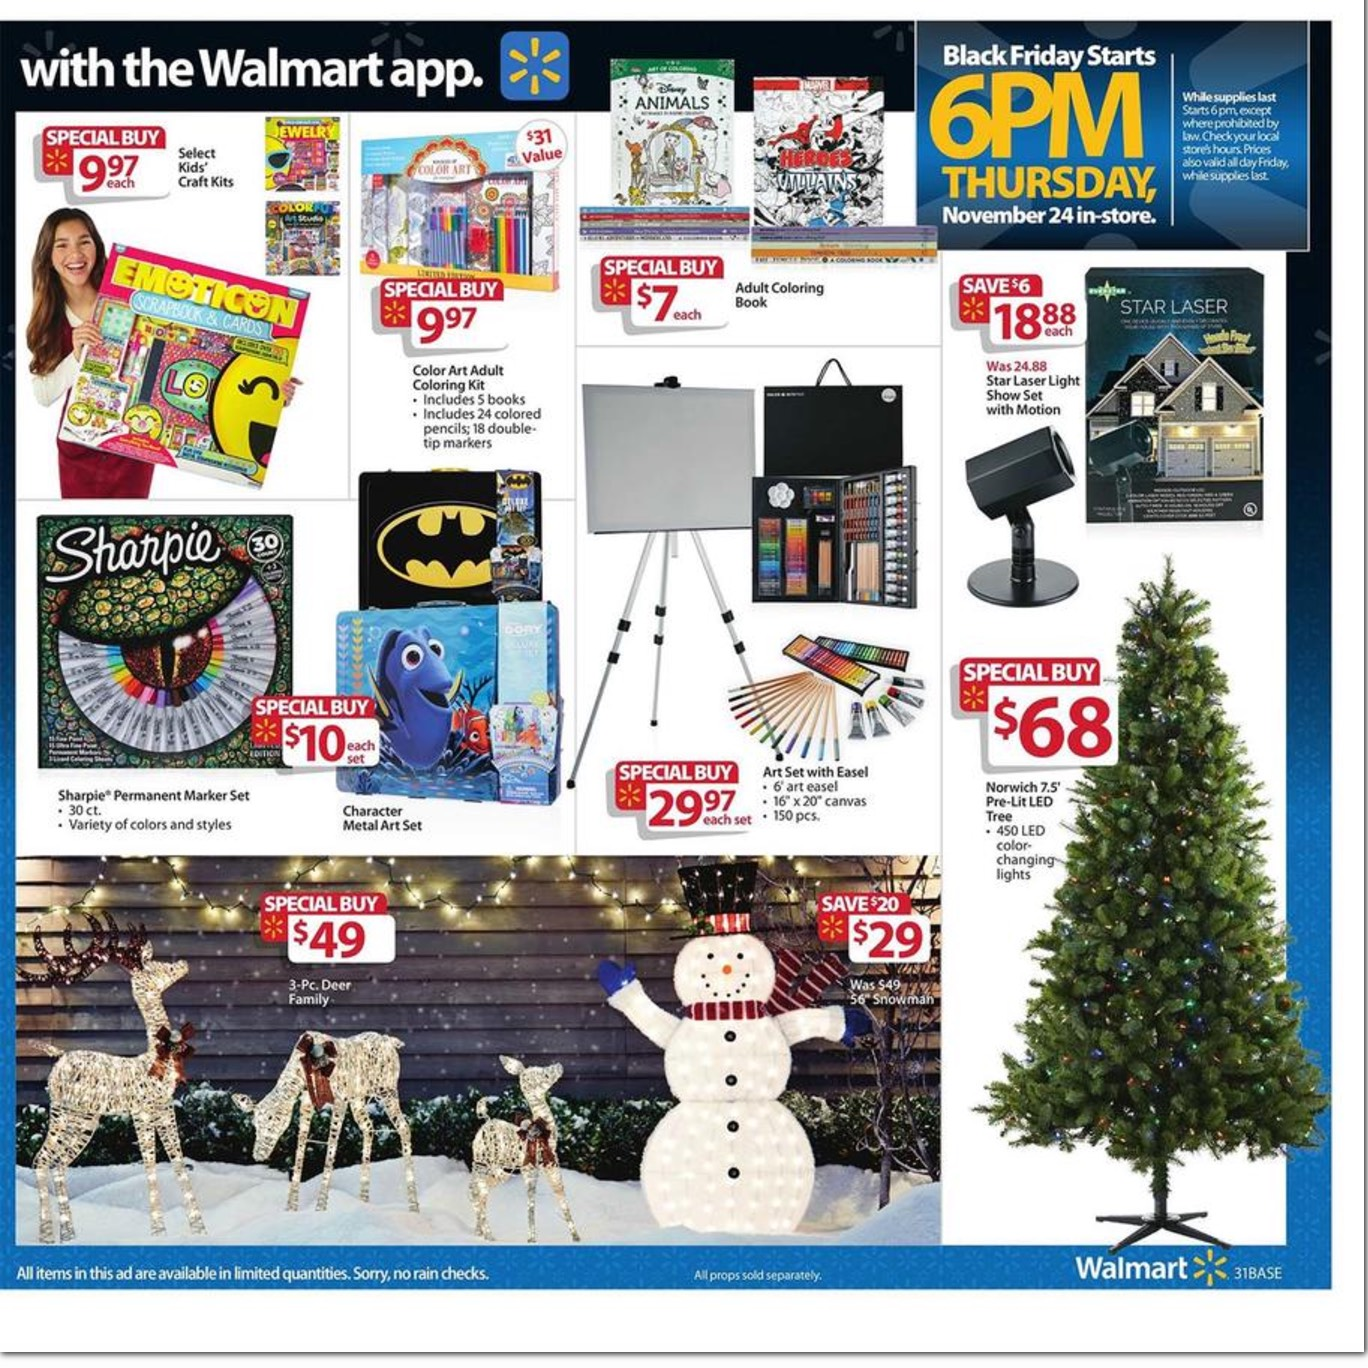 Kitchenaid Black Friday 2016 Walmart: Walmart Black Friday Ad 2016